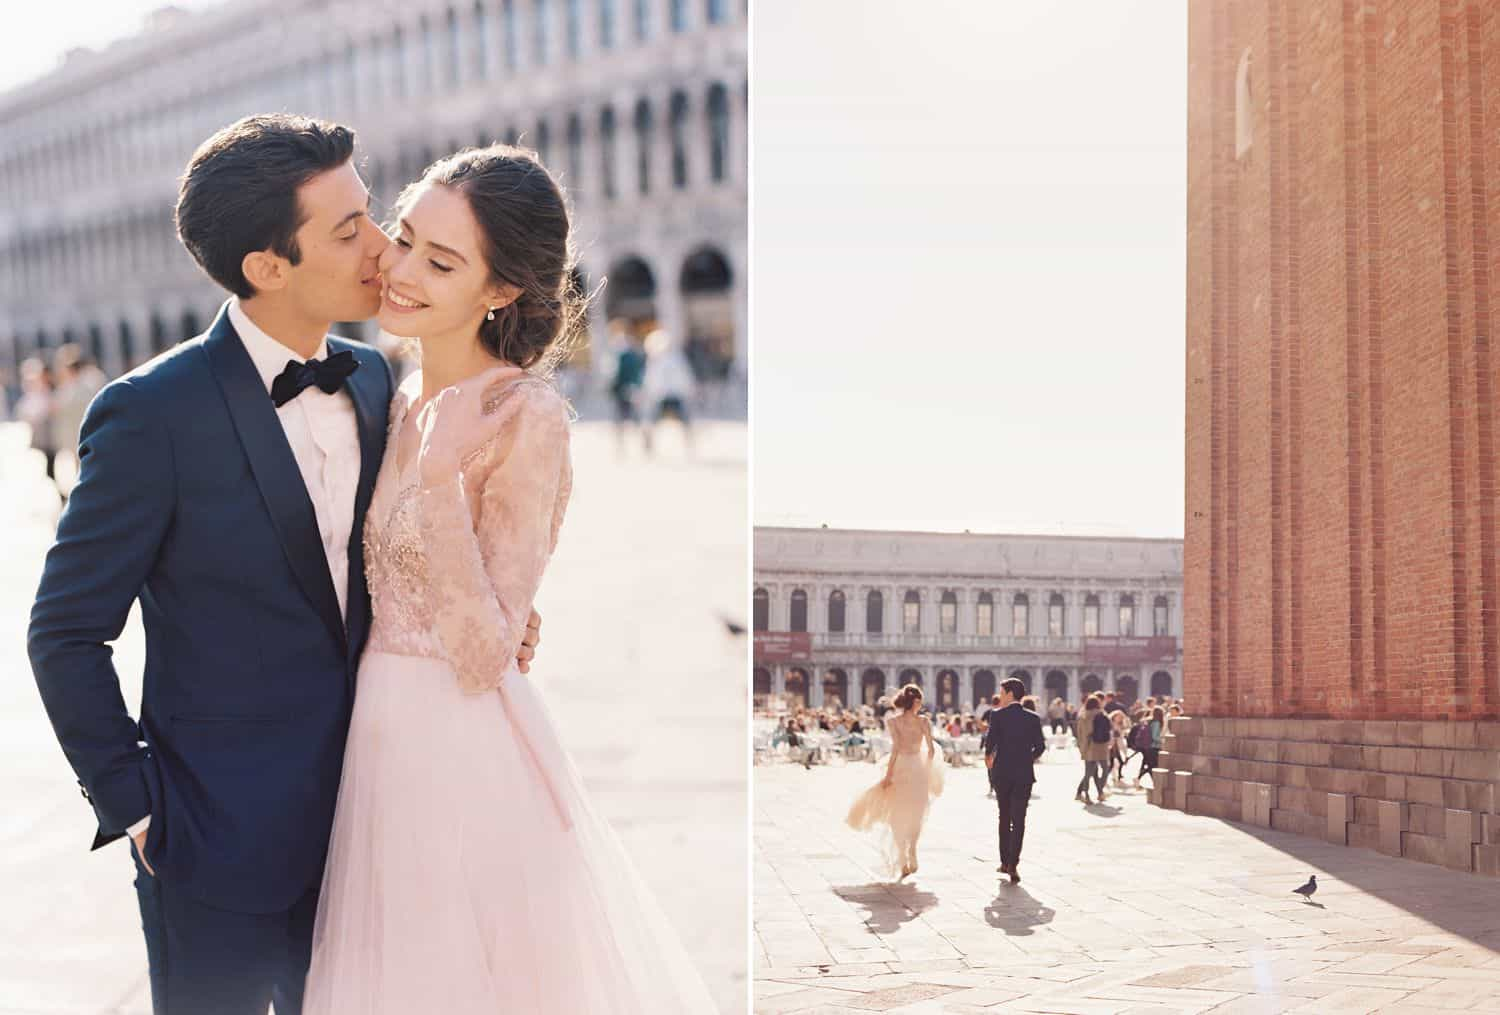 A bride and groom tour Italy in a blue tuxedo and a pink wedding gown.